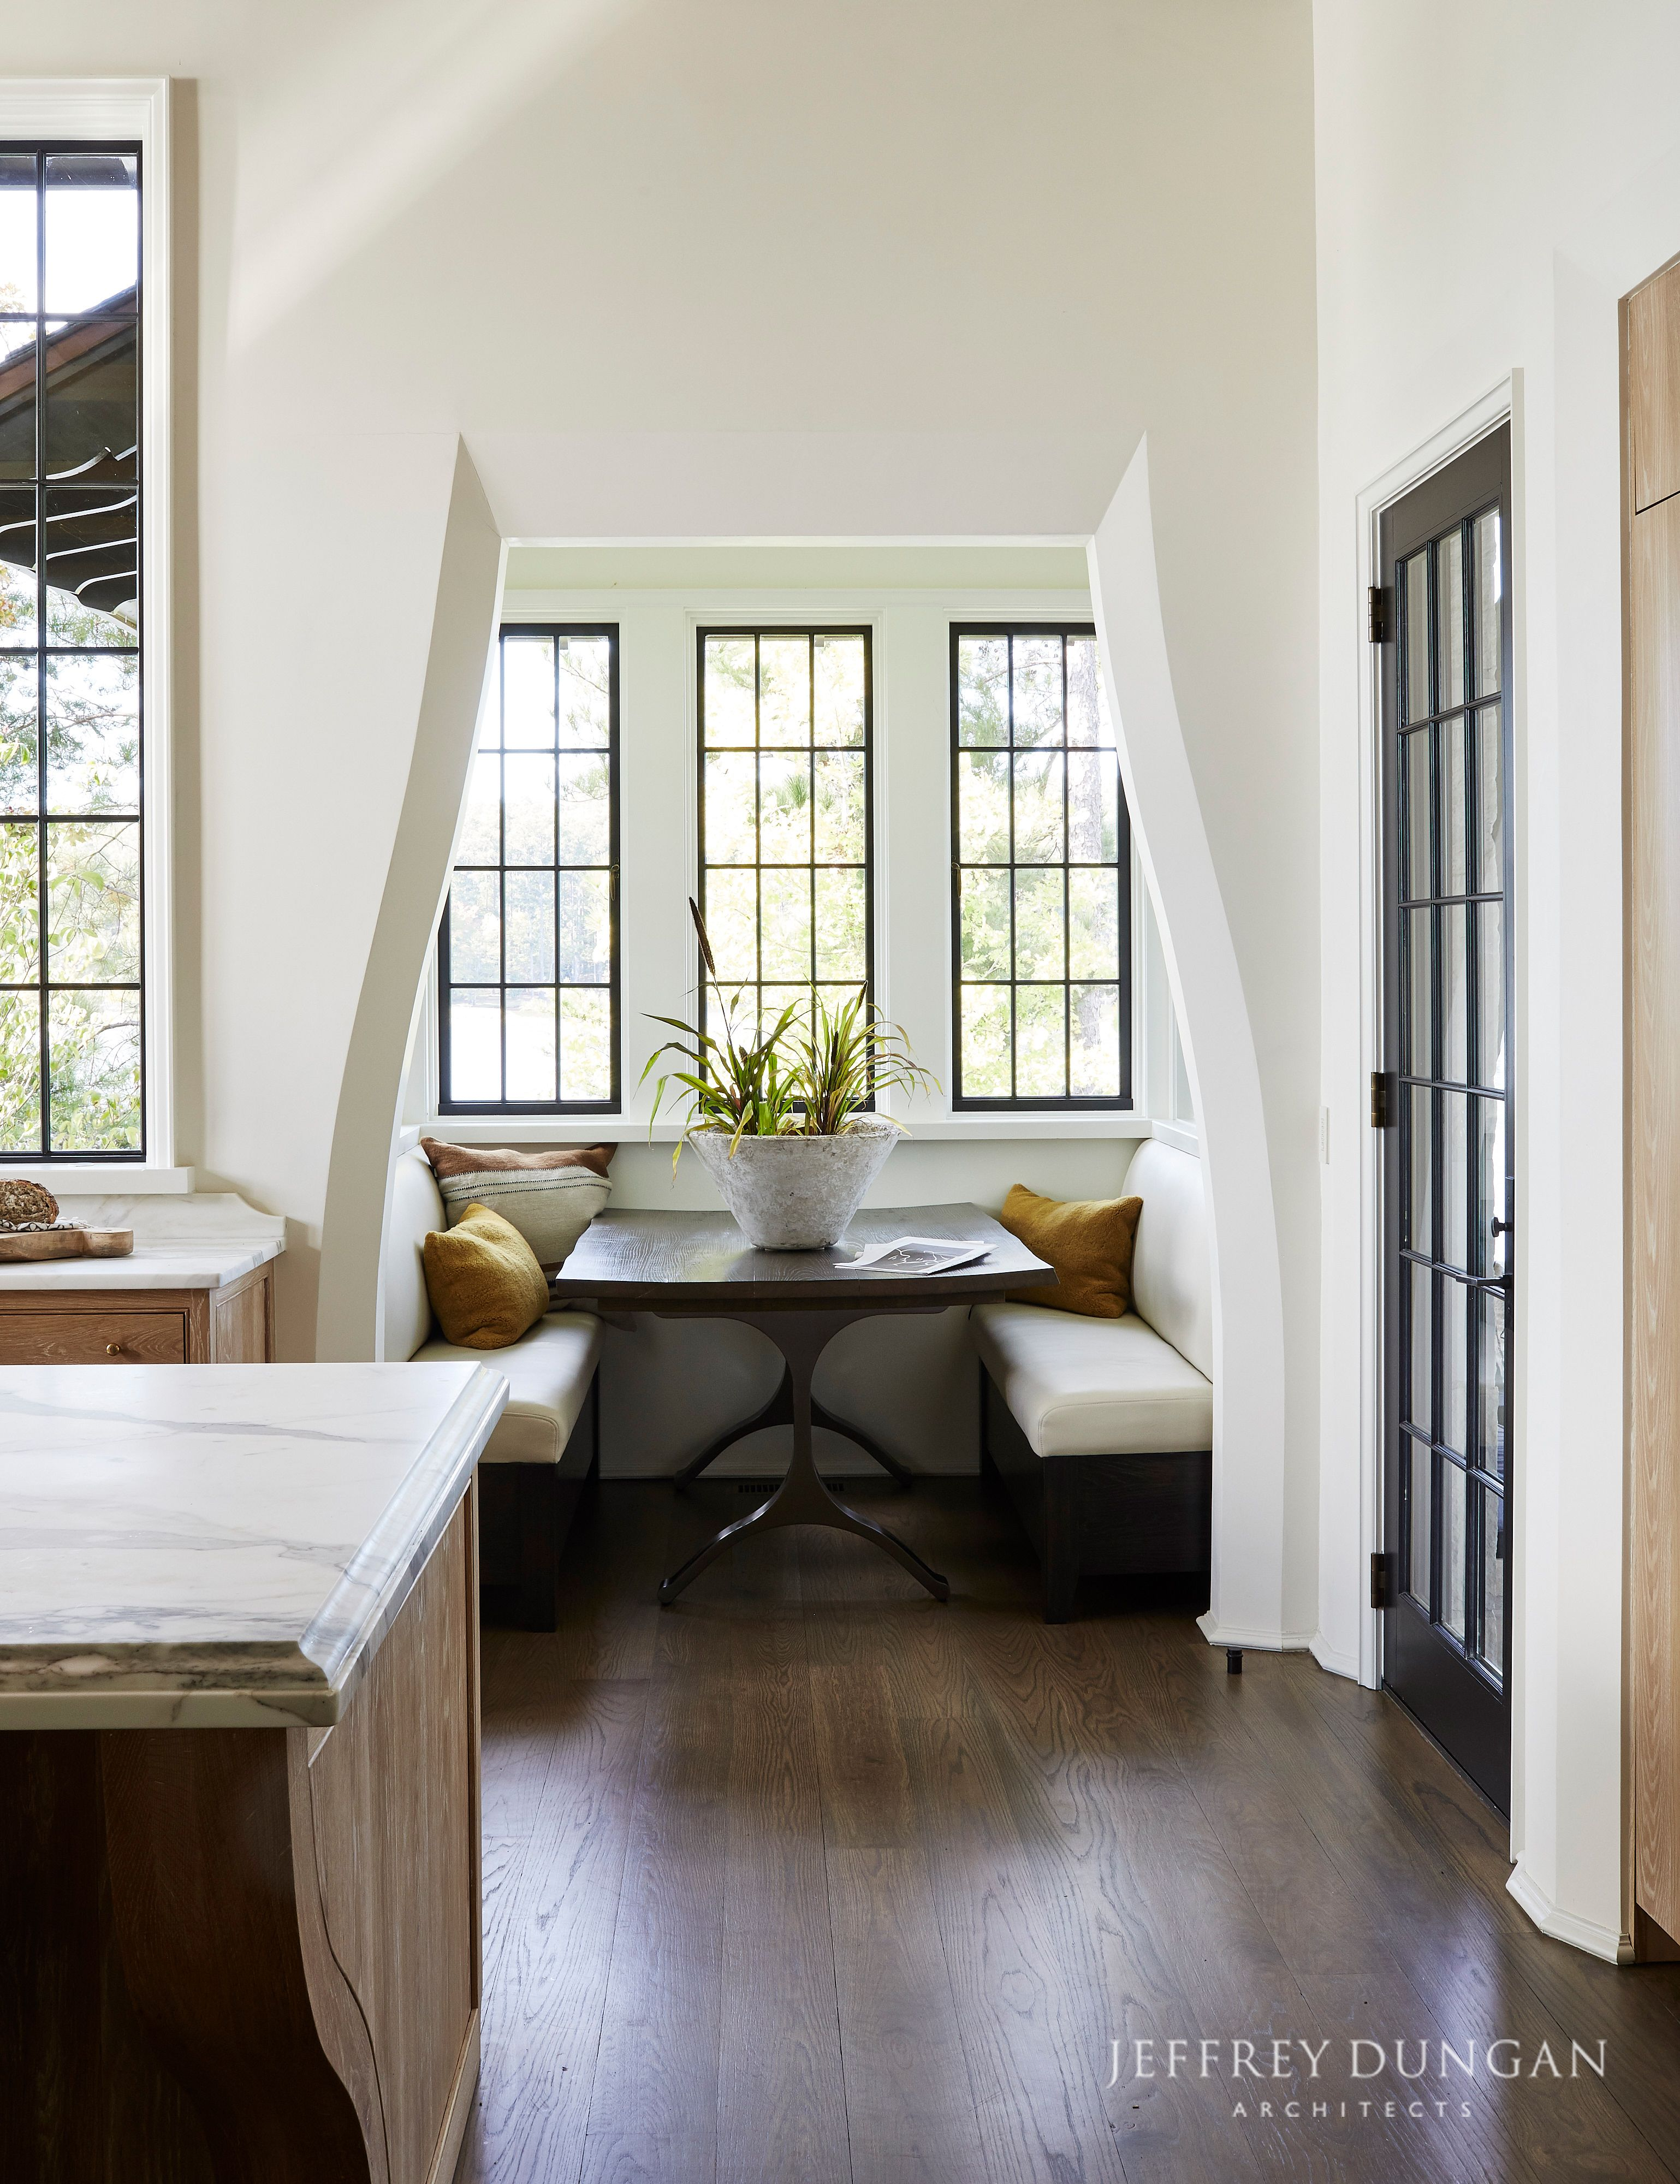 Jeffrey Dungan Architects Check Out Jeffrey Dungan S New Book The Nature Of Home Home Dining Nook Home Decor